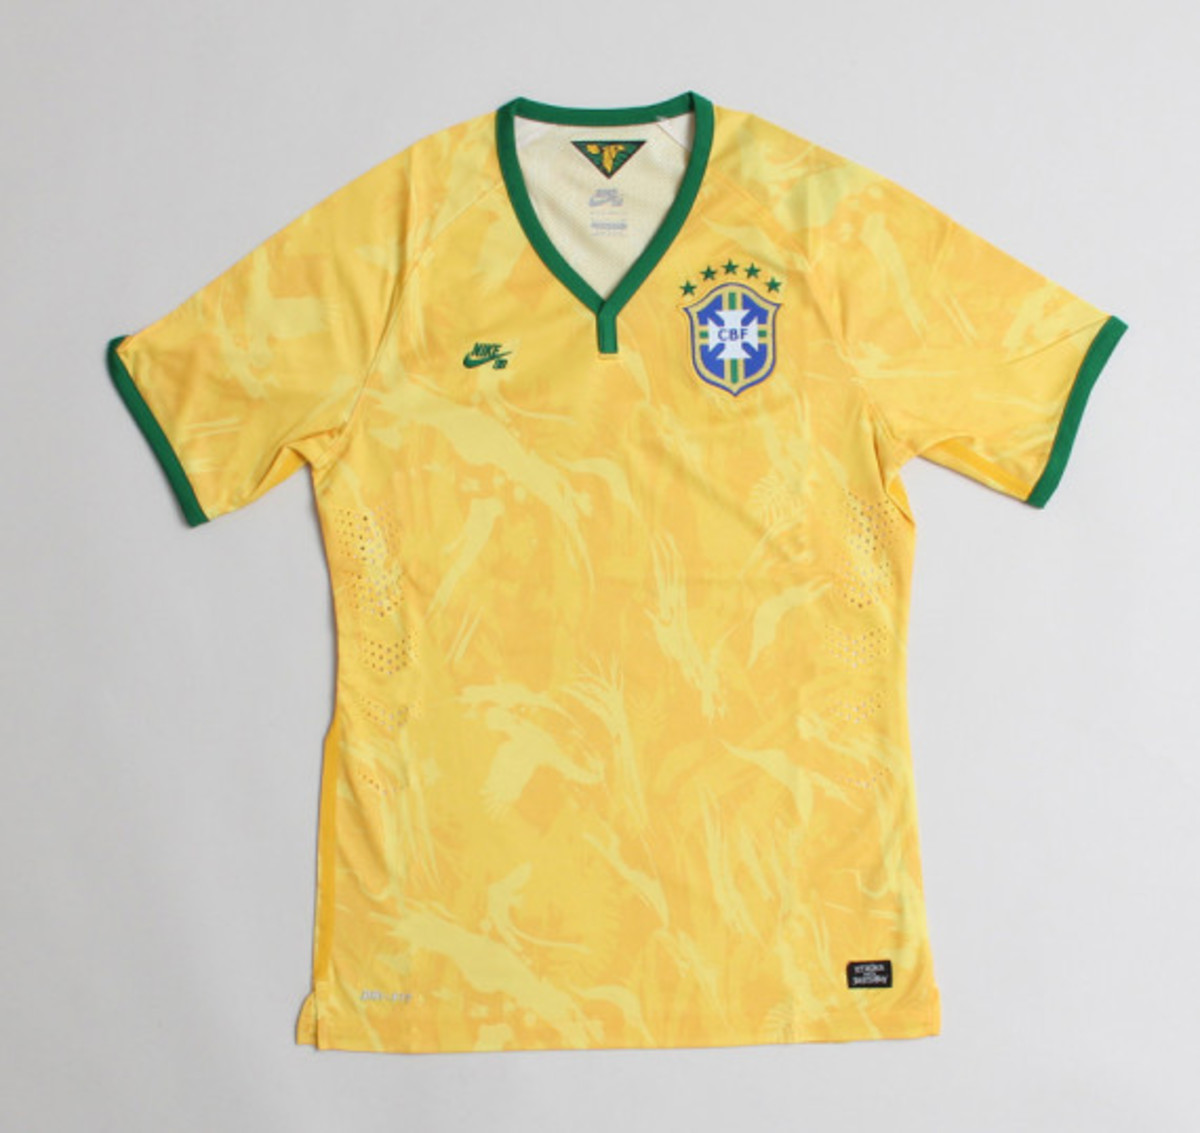 cb171f3b5f Nike SB - CBF Home Stadium Jersey for 2014 FIFA World Cup ...